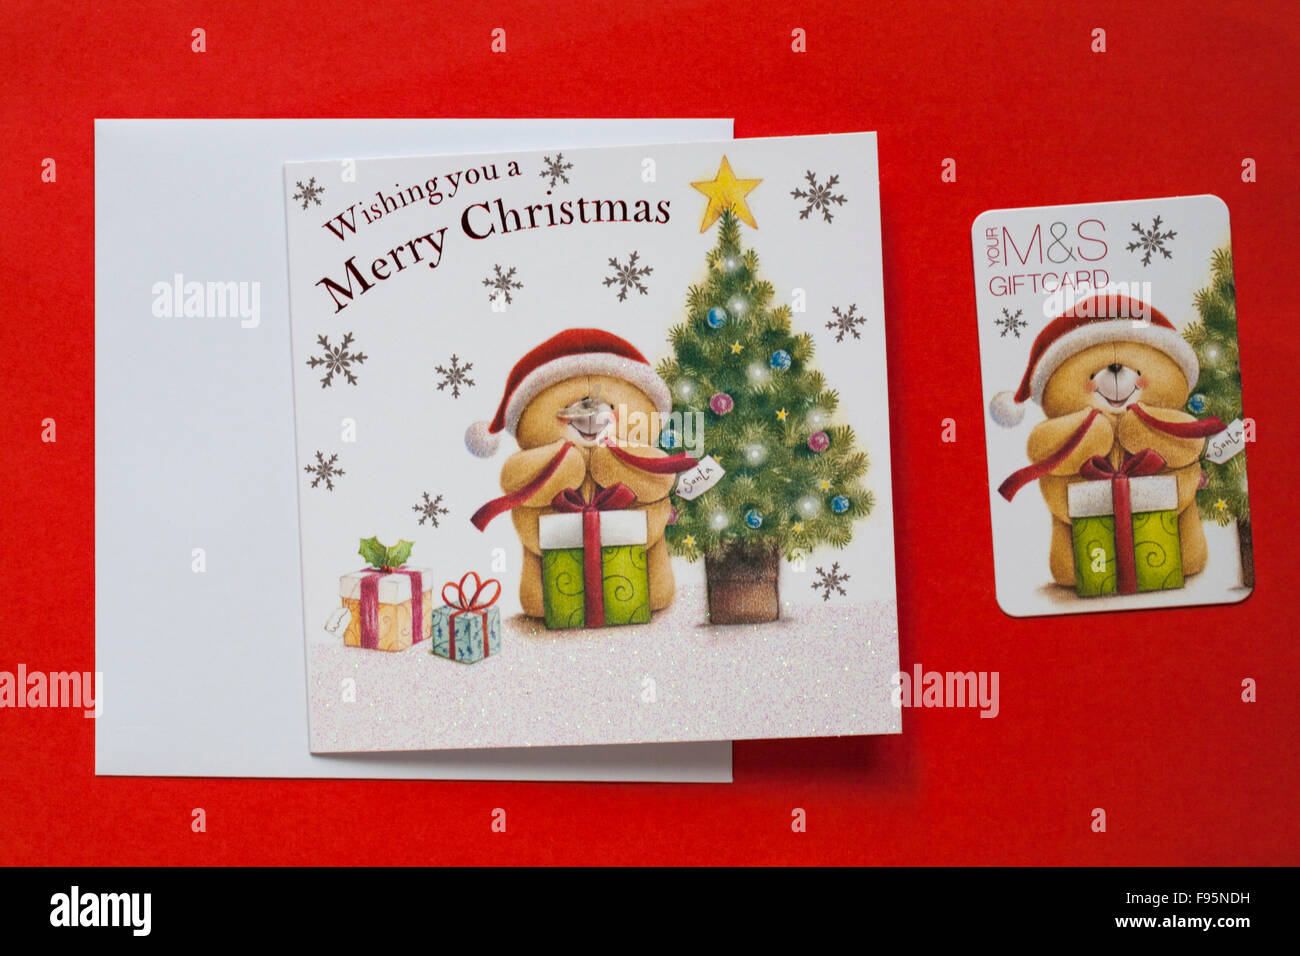 Ms christmas giftcard with wishing you a merry christmas card ms christmas giftcard with wishing you a merry christmas card gift card isolated on red background kristyandbryce Image collections